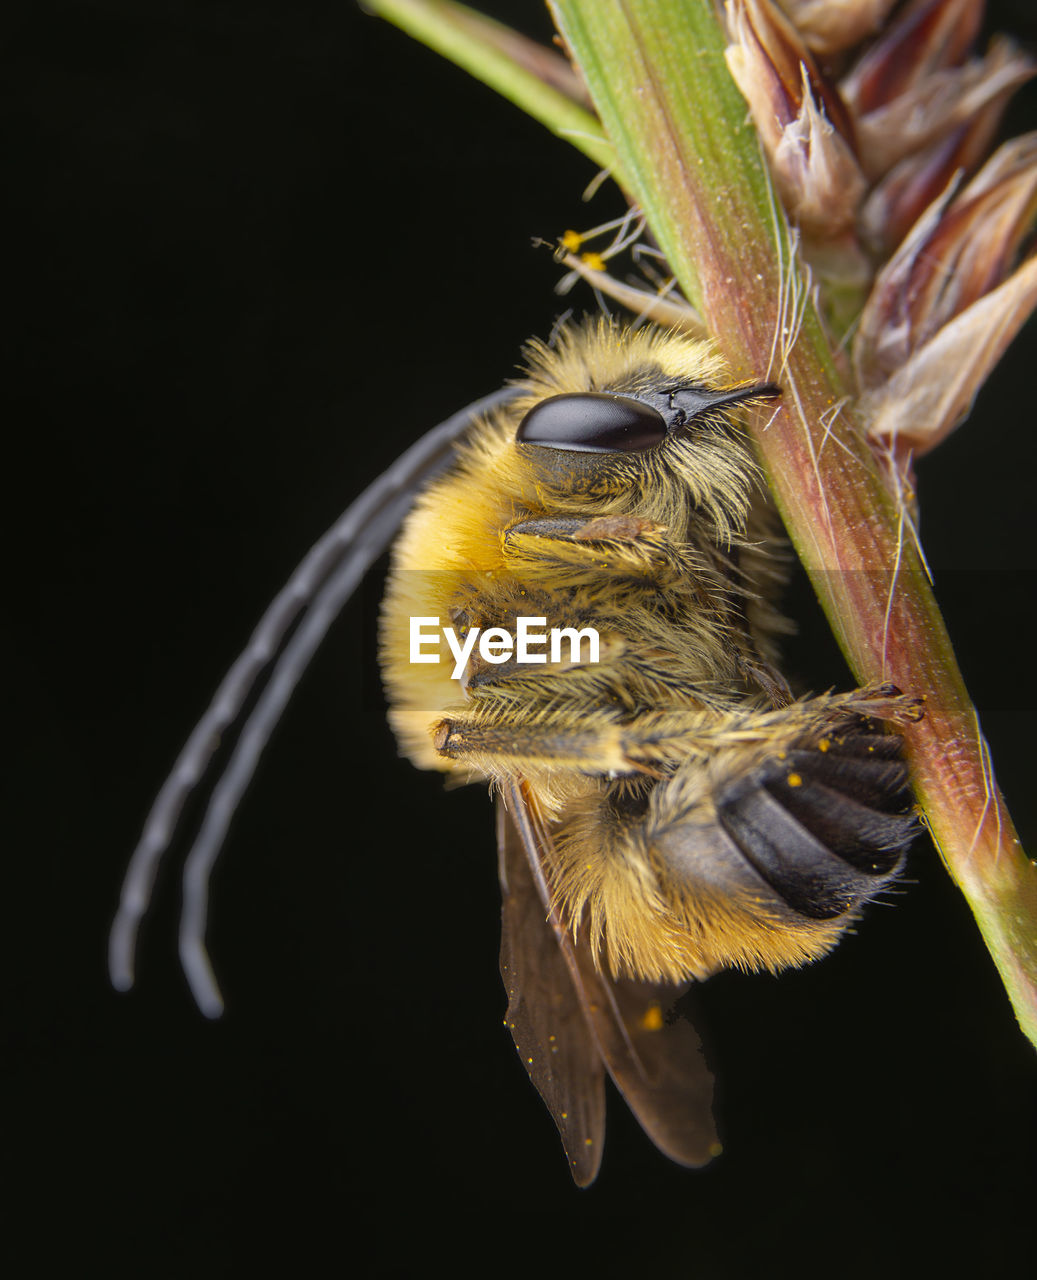 CLOSE-UP OF BEE ON A FLOWER